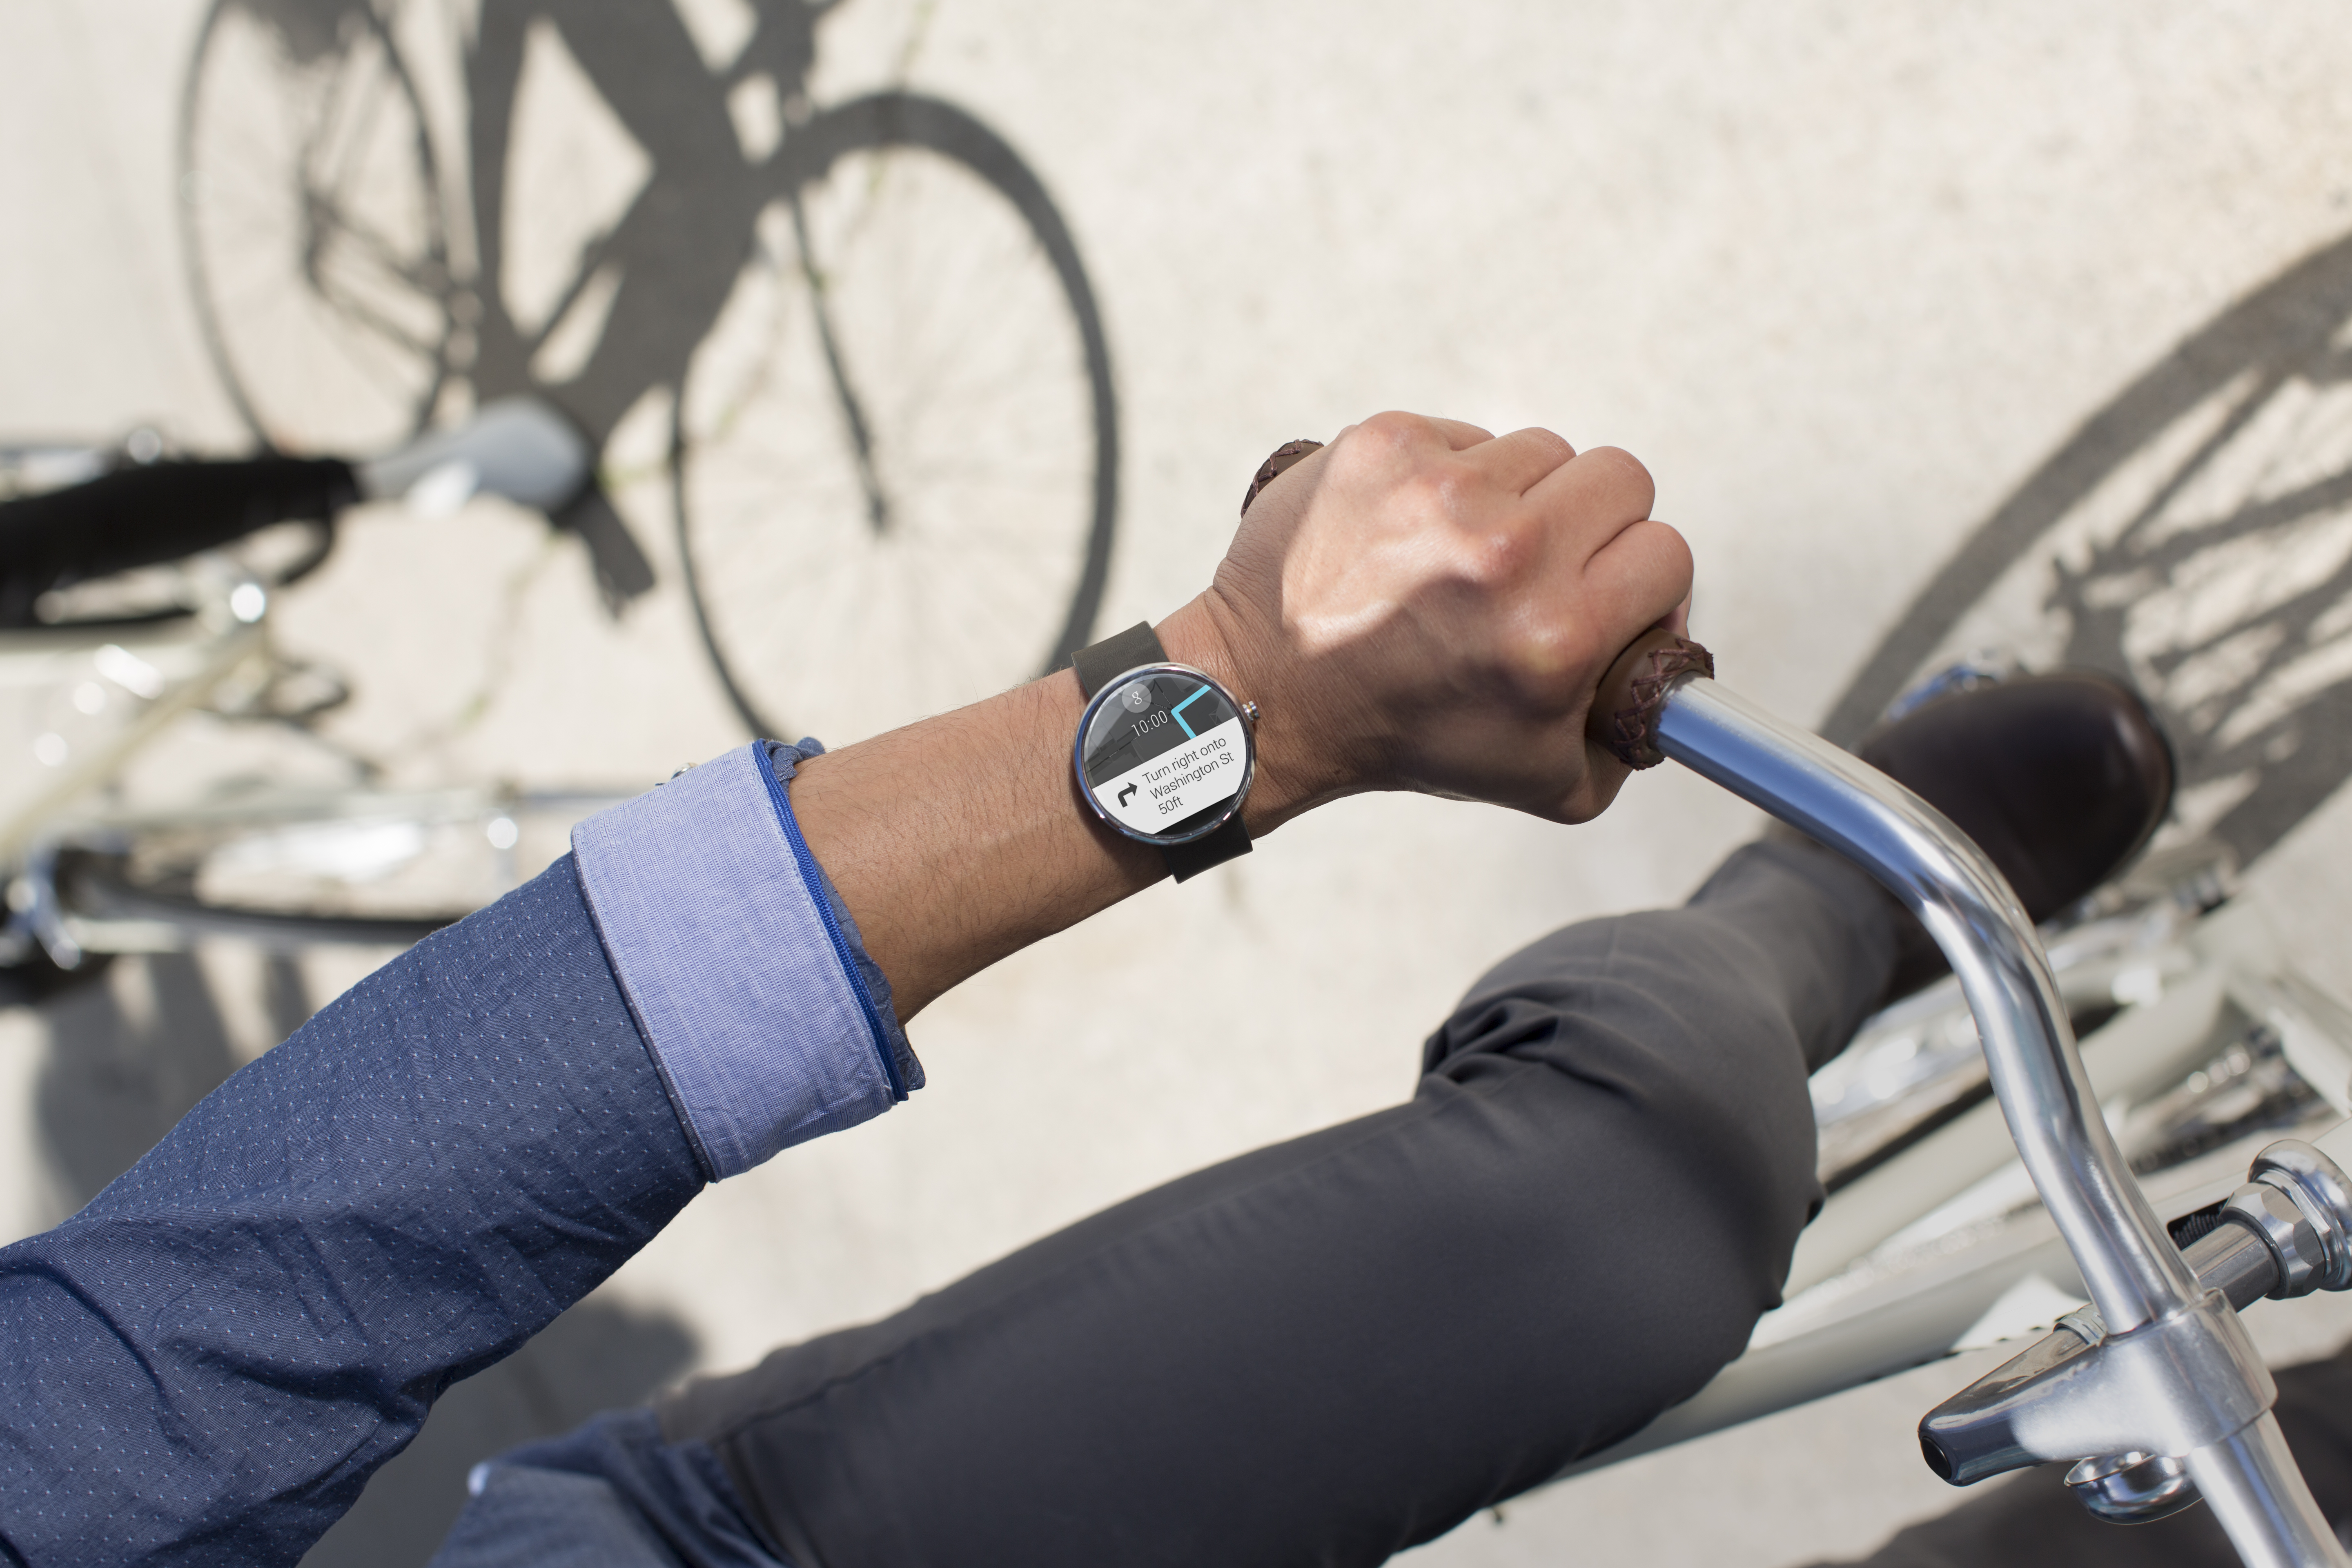 Moto 360 Android Wear smart watch officially announced